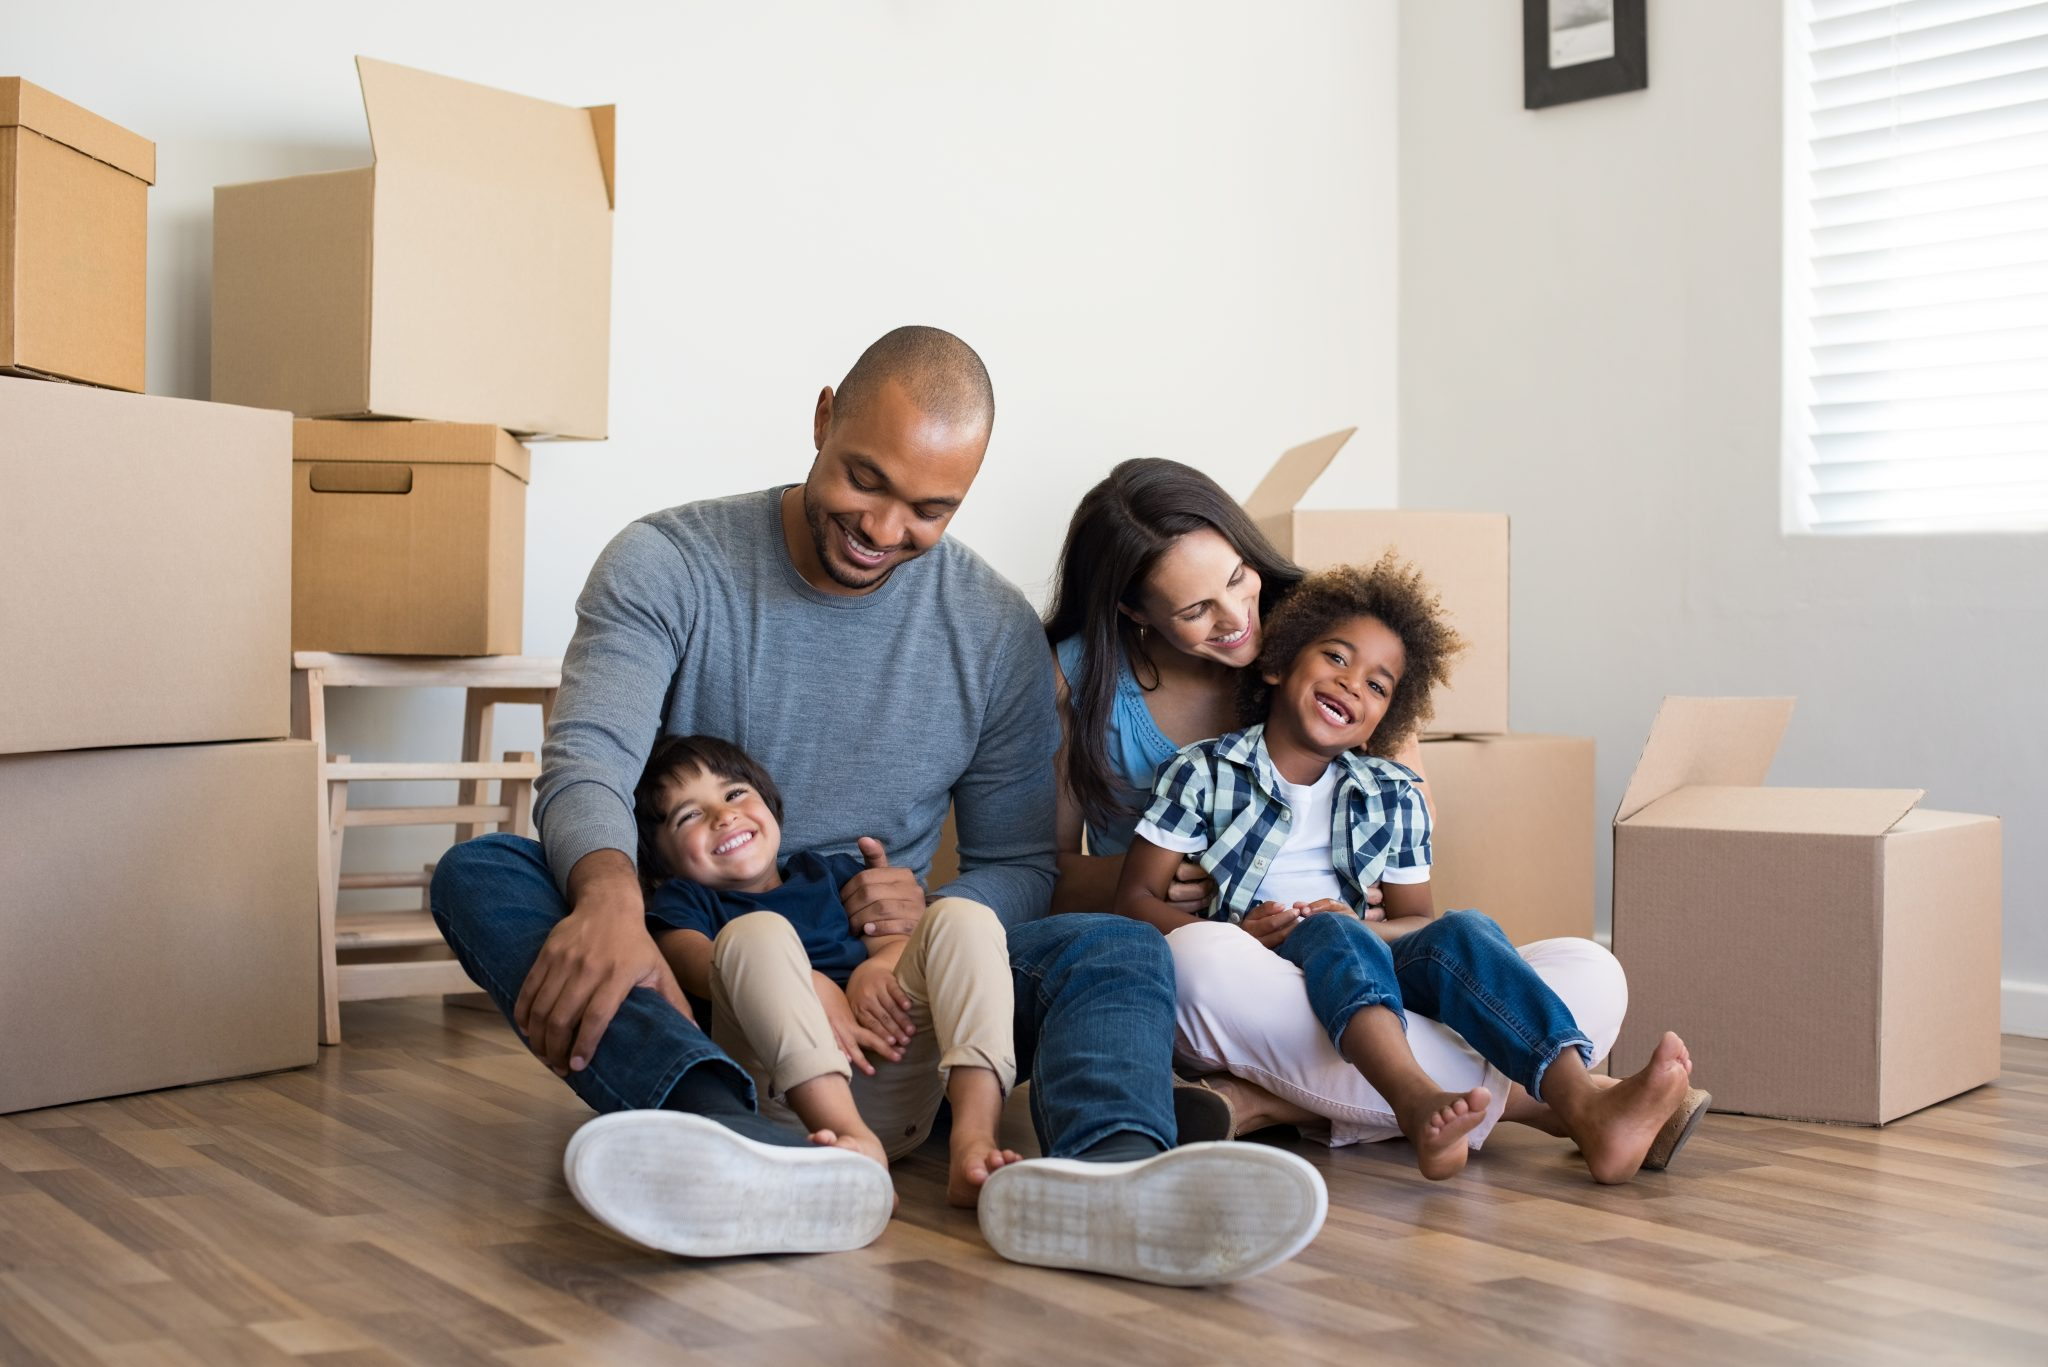 Common Relocation Mistakes An How You Can Avoid Them - Moving Relocation Tips and Advice